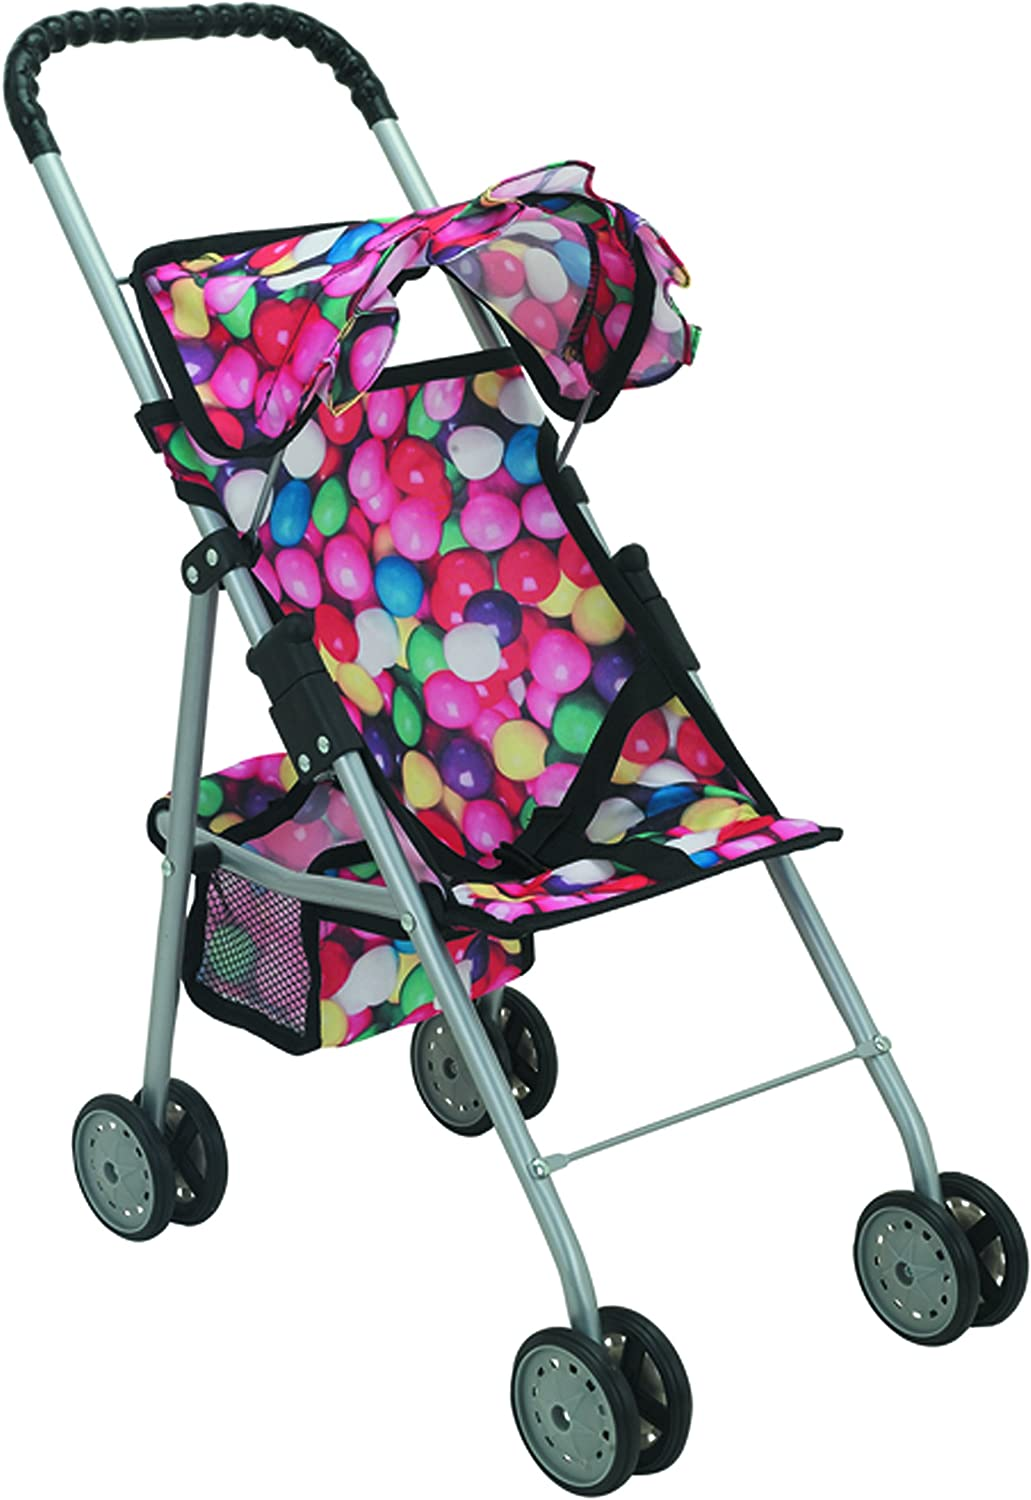 Mommy & Me My First Baby Doll Stroller with Basket, Extra Tall 23 Inch, Foldable Stroller, Gumballs